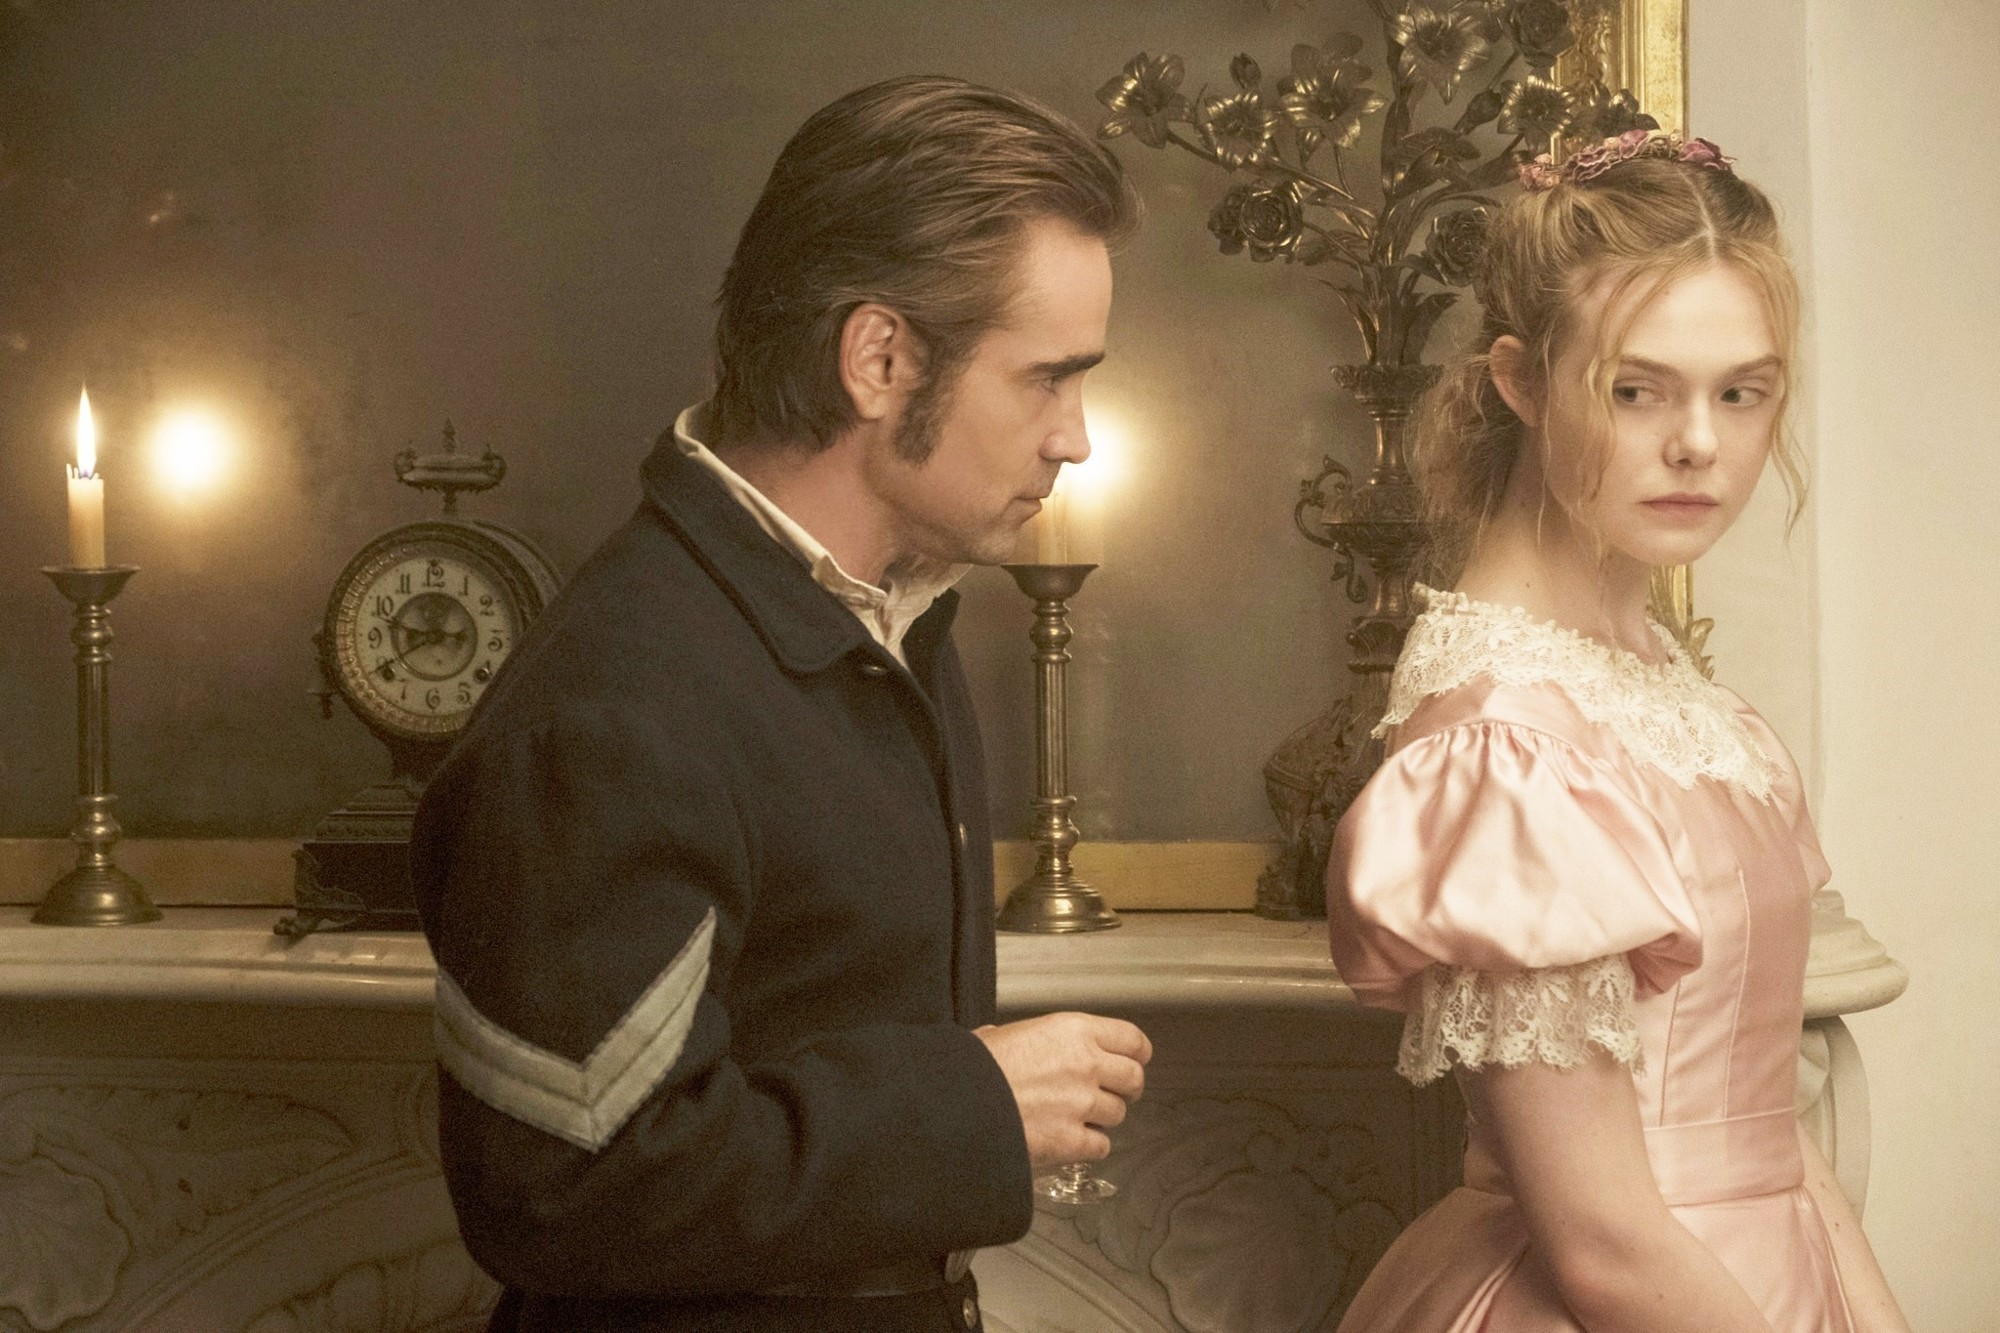 Corporal John McBurney (Colin Farrell) and Elle Fanning in The Beguiled (2017)